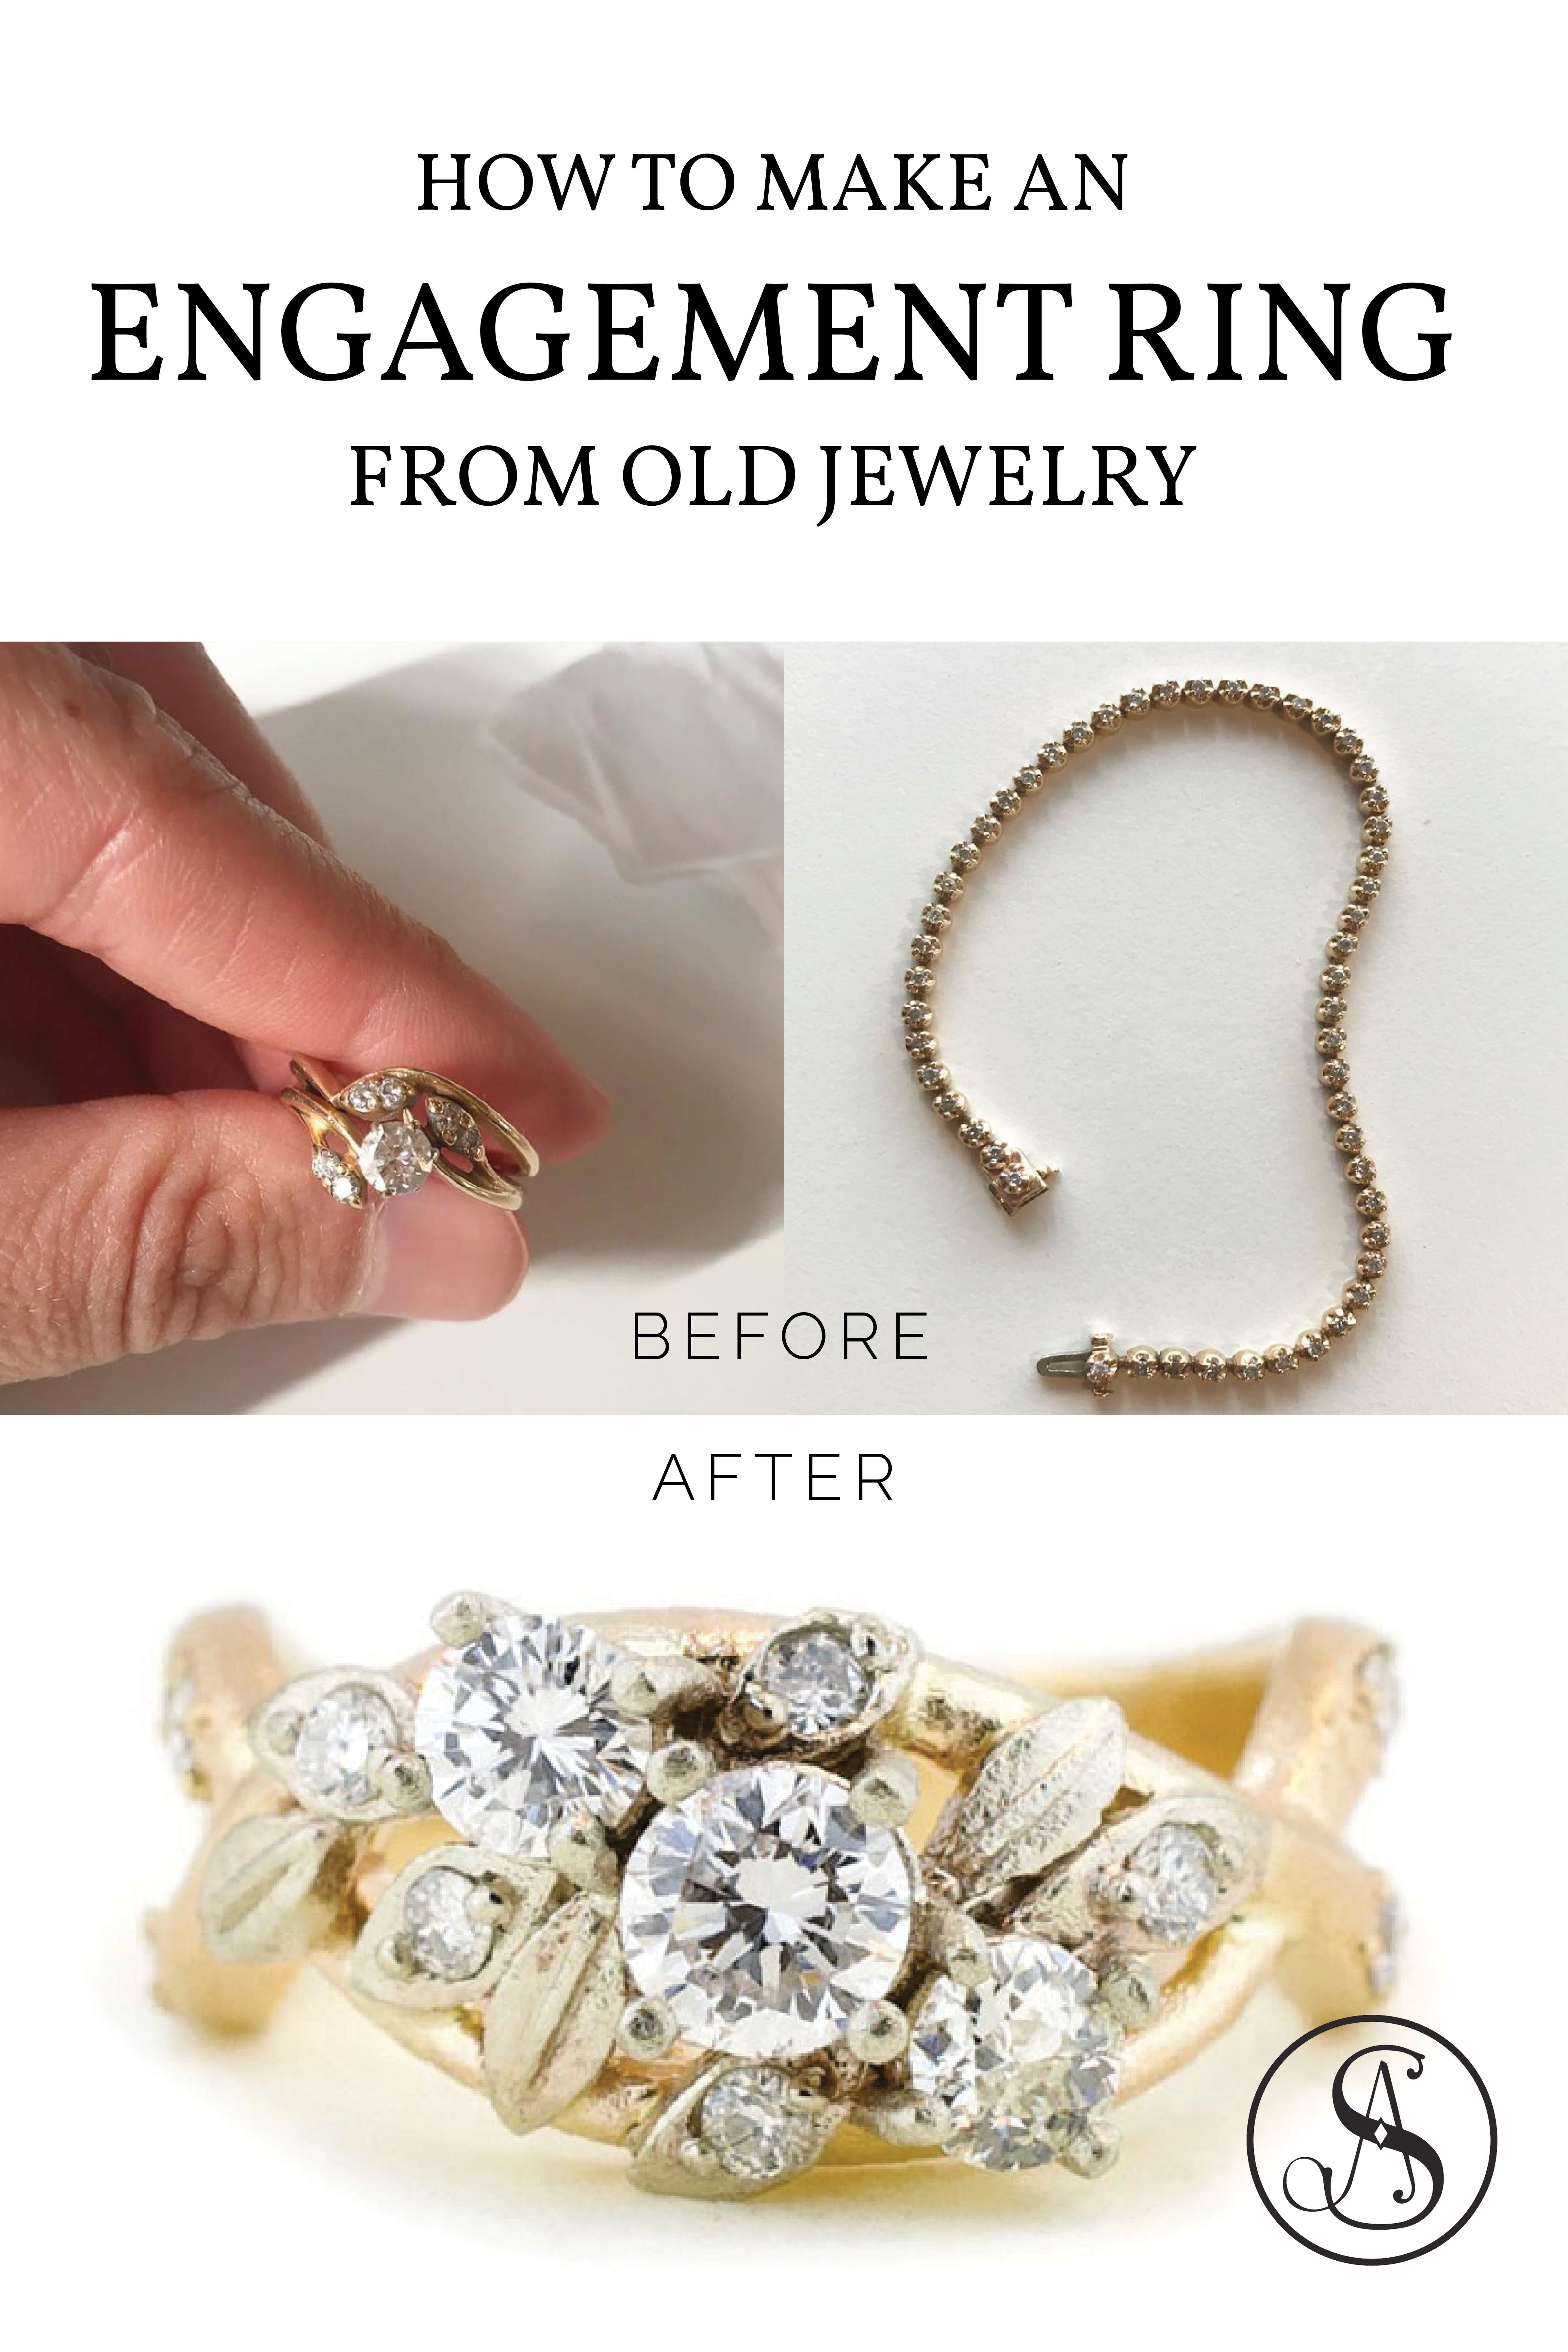 Creating New Jewelry From Old Jewelry Abby Sparks Jewelry Personalized Jewelry Mother Jewelry Custom Jewelry Design